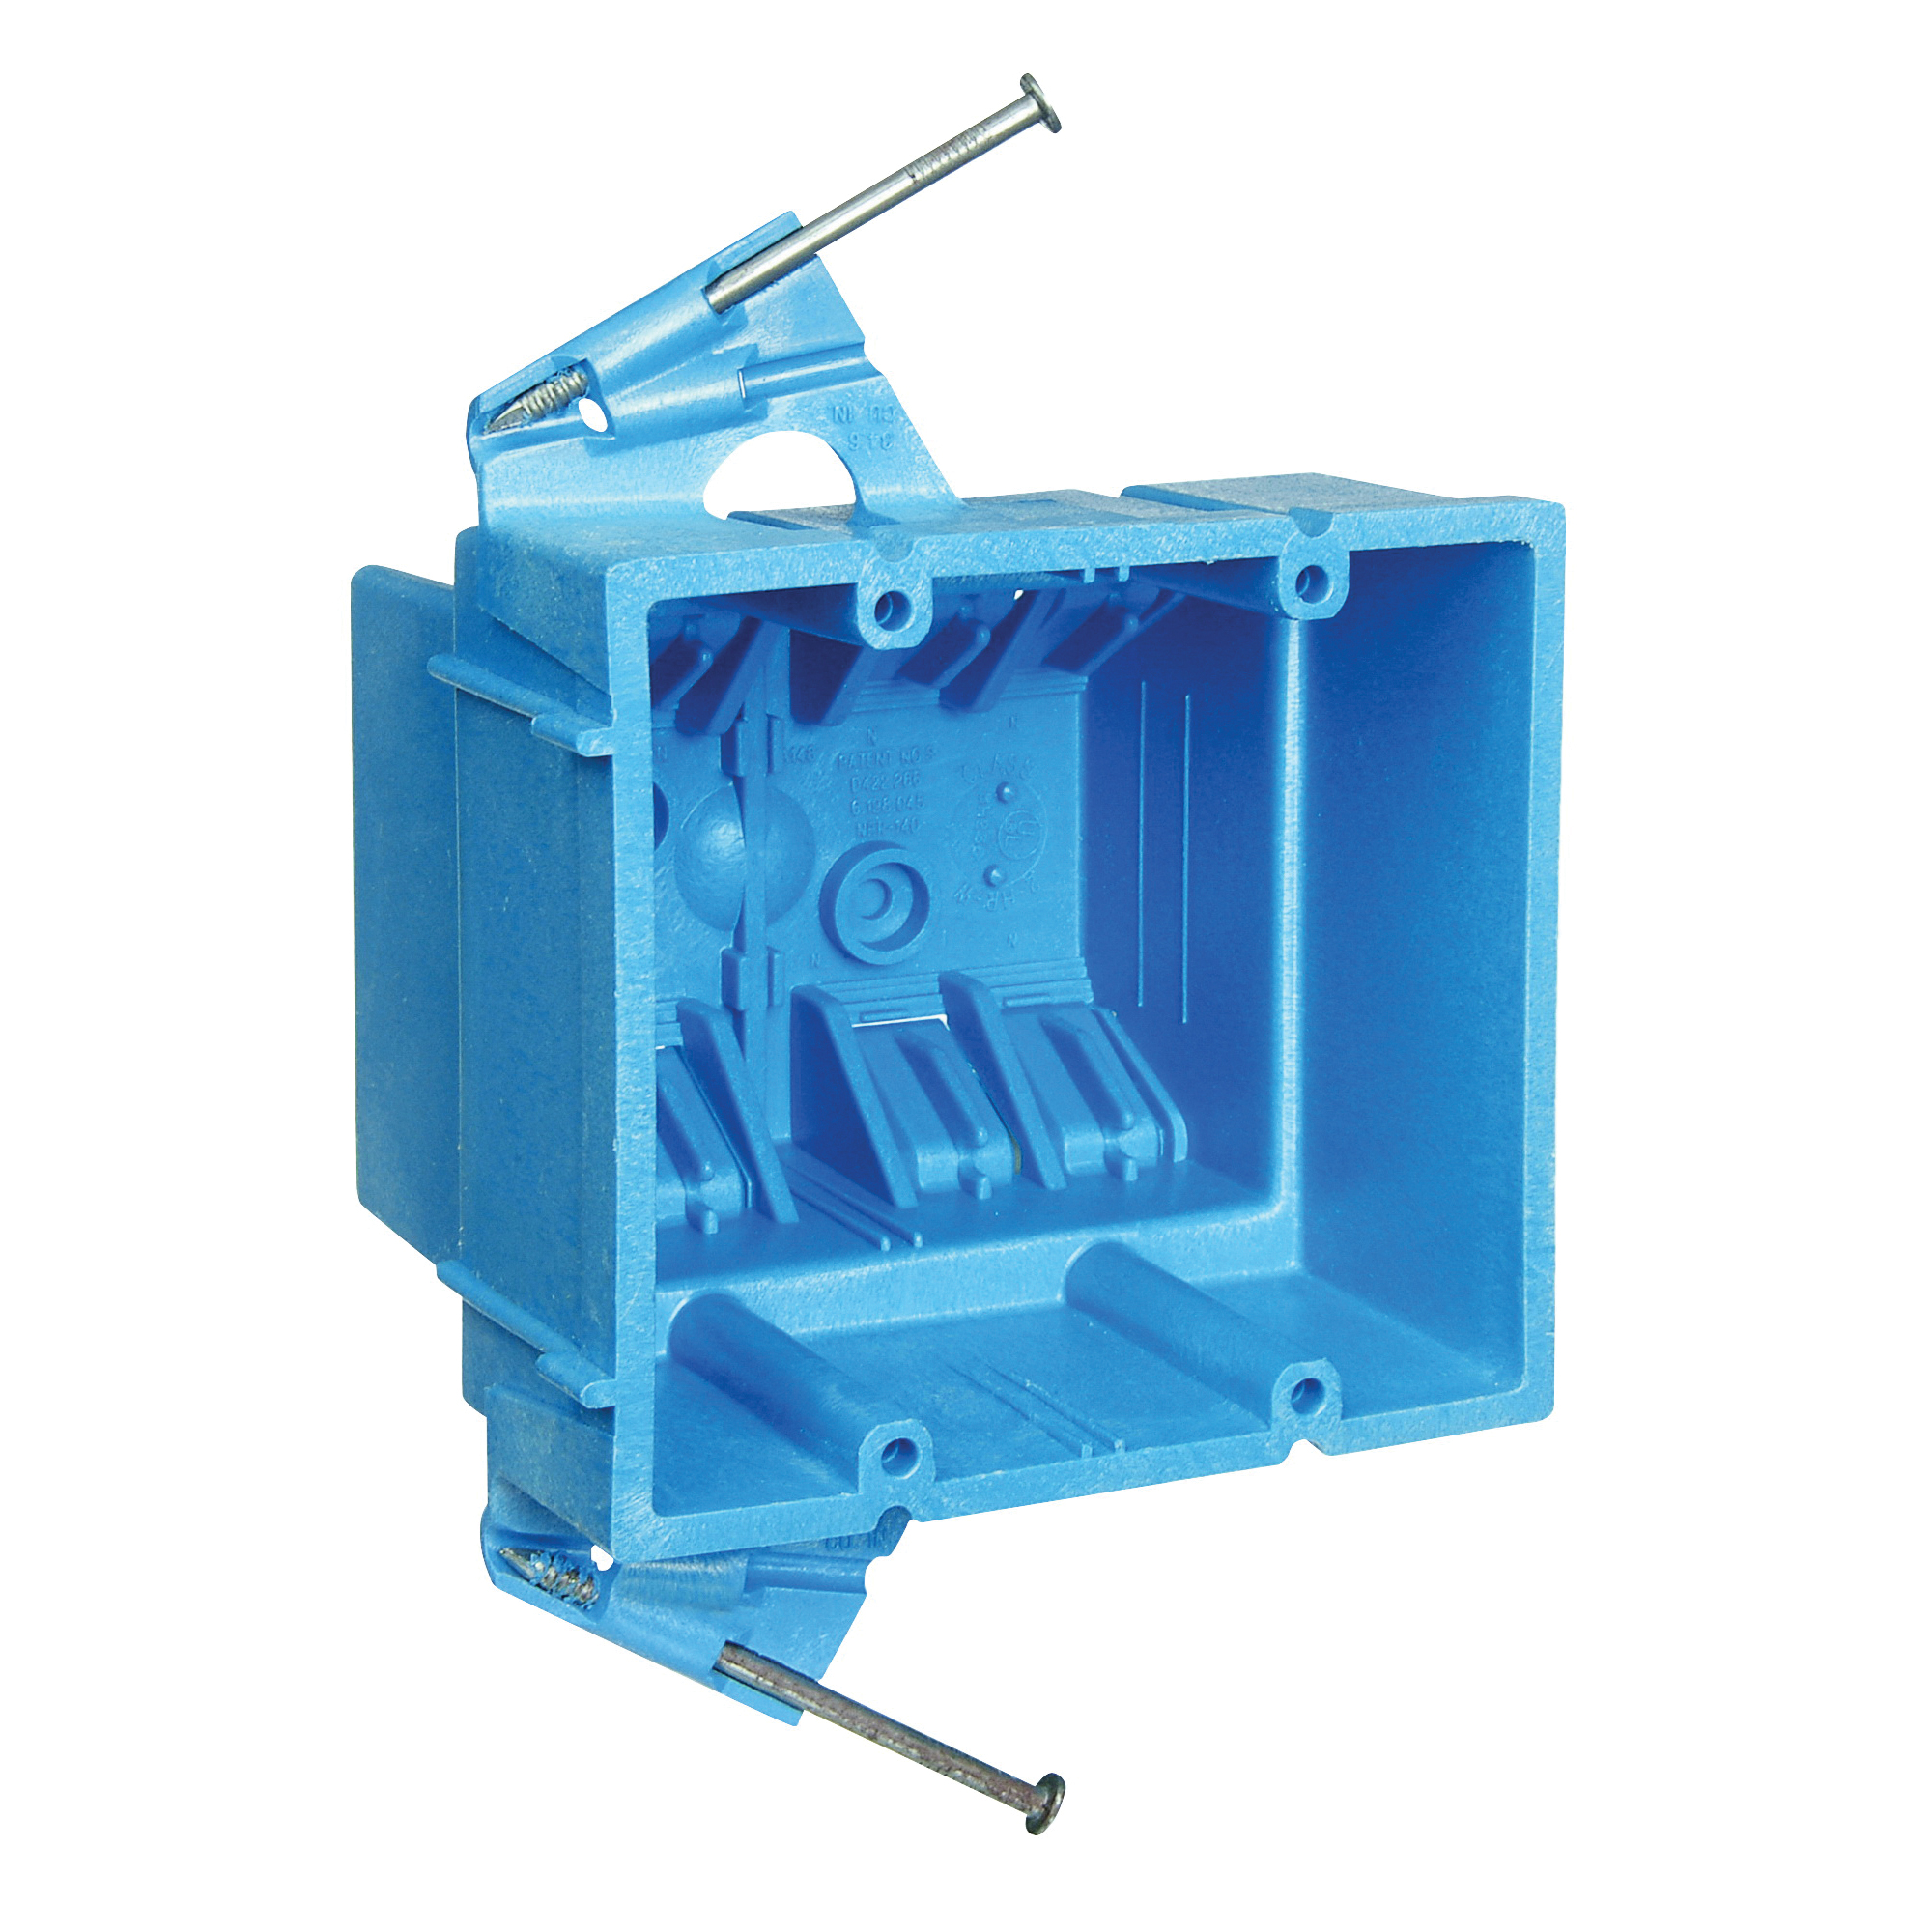 Picture of Carlon BH235A Outlet Box, 2-Gang, PVC, Blue, Nail Mounting